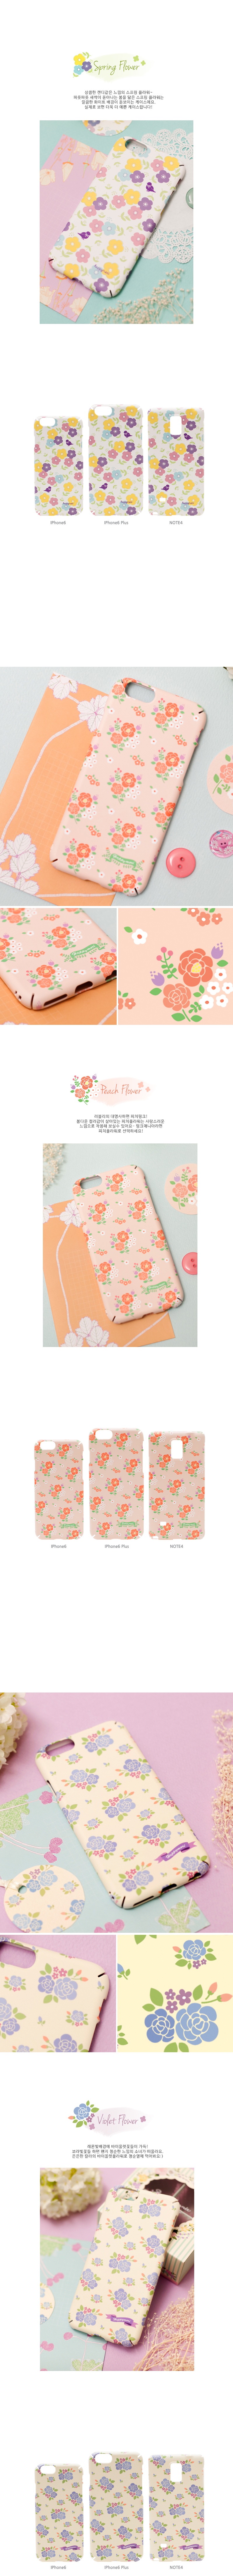 [HAPPYMORI] Hard Case_FlowerPattern 10Design (iPhone6Plus,Galaxy Note4)